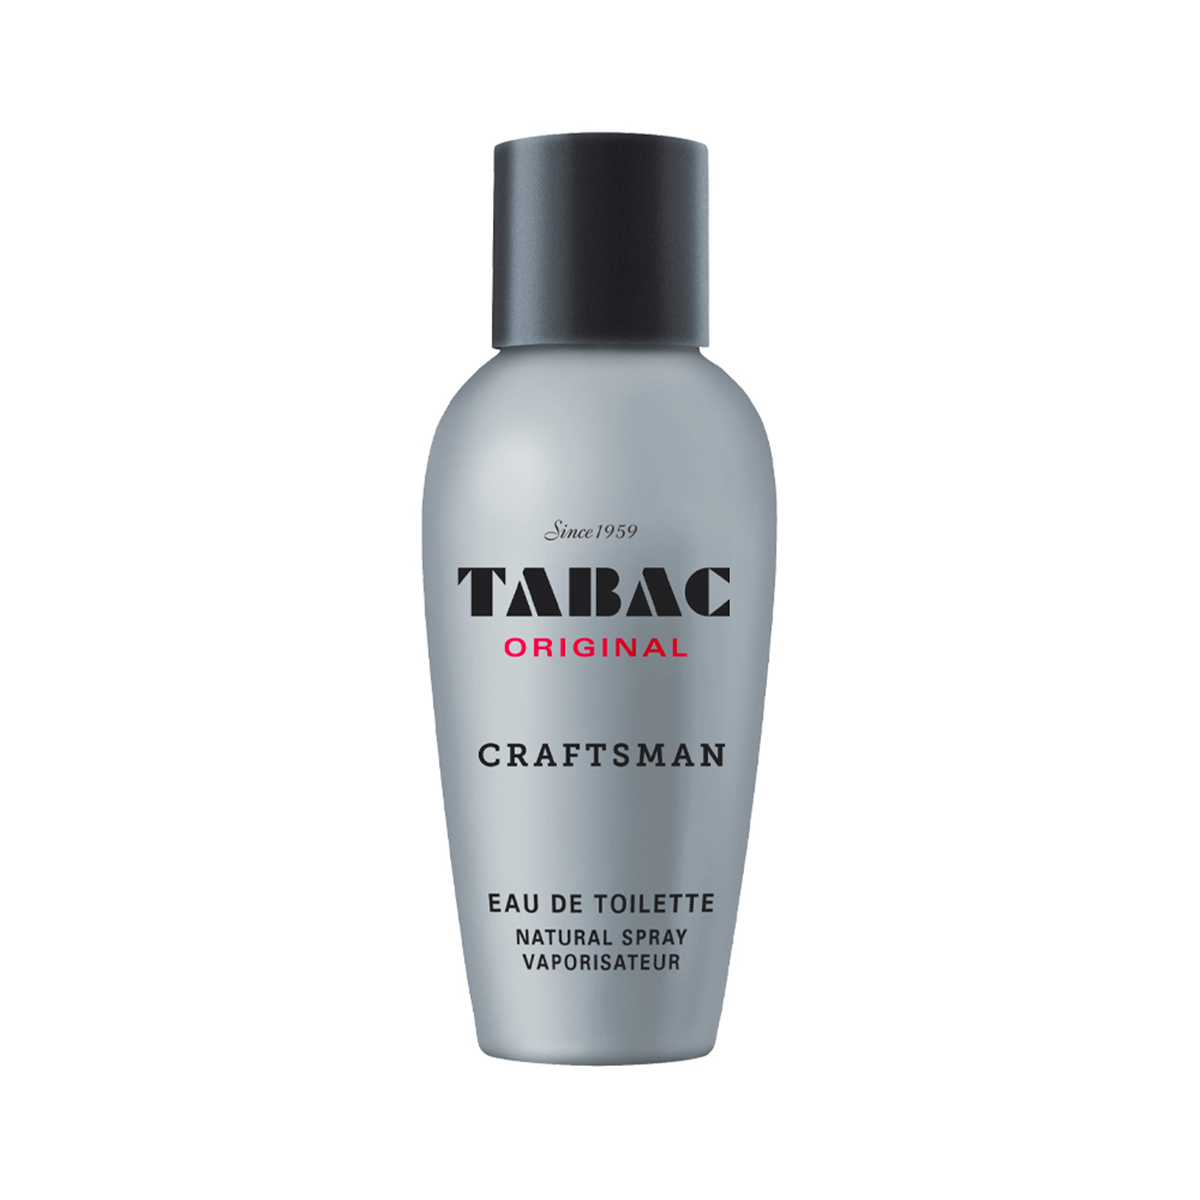 Tabac original craftsman after shave lotion 150ml